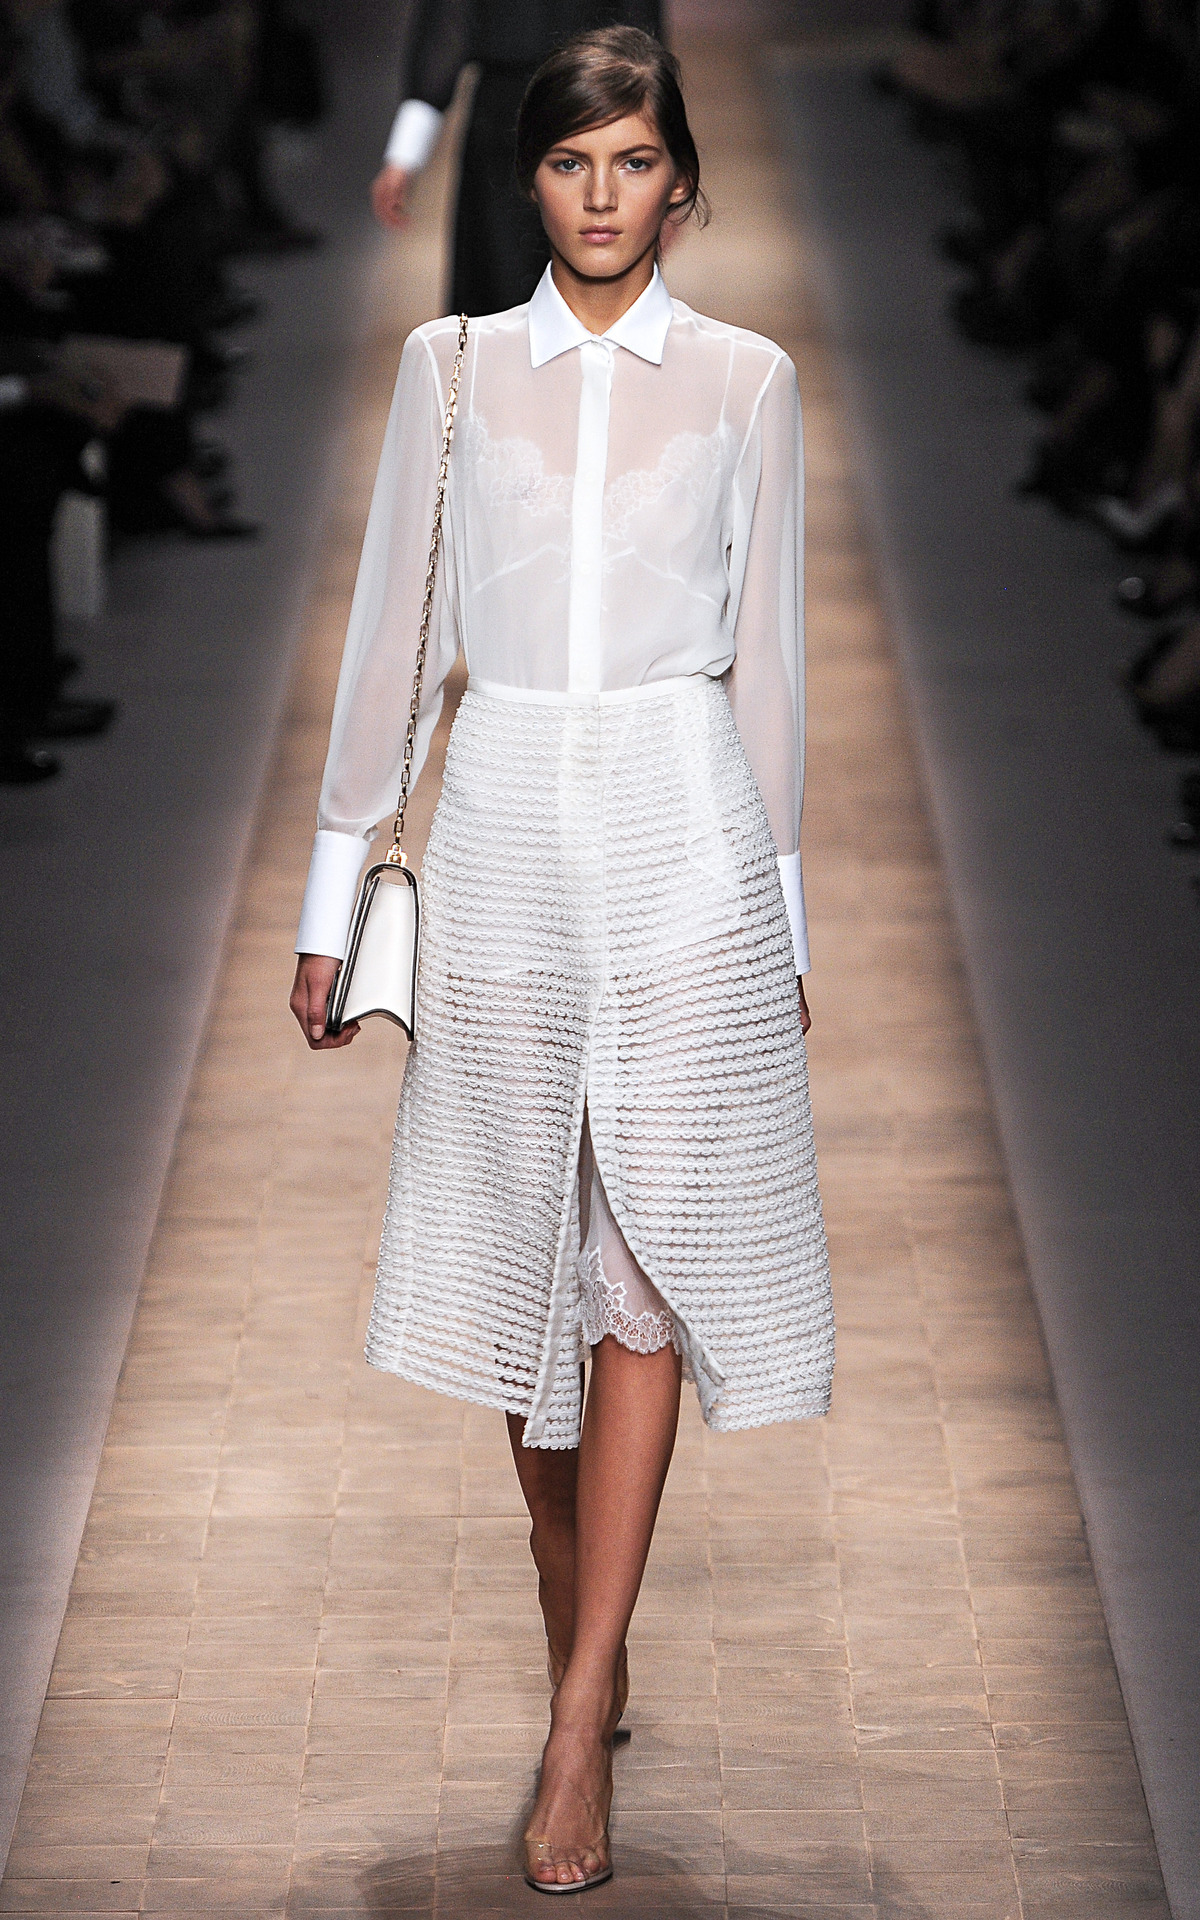 Photo by firstVIEW Buttoned up sexiness. Valentino Spring 2013, Paris.